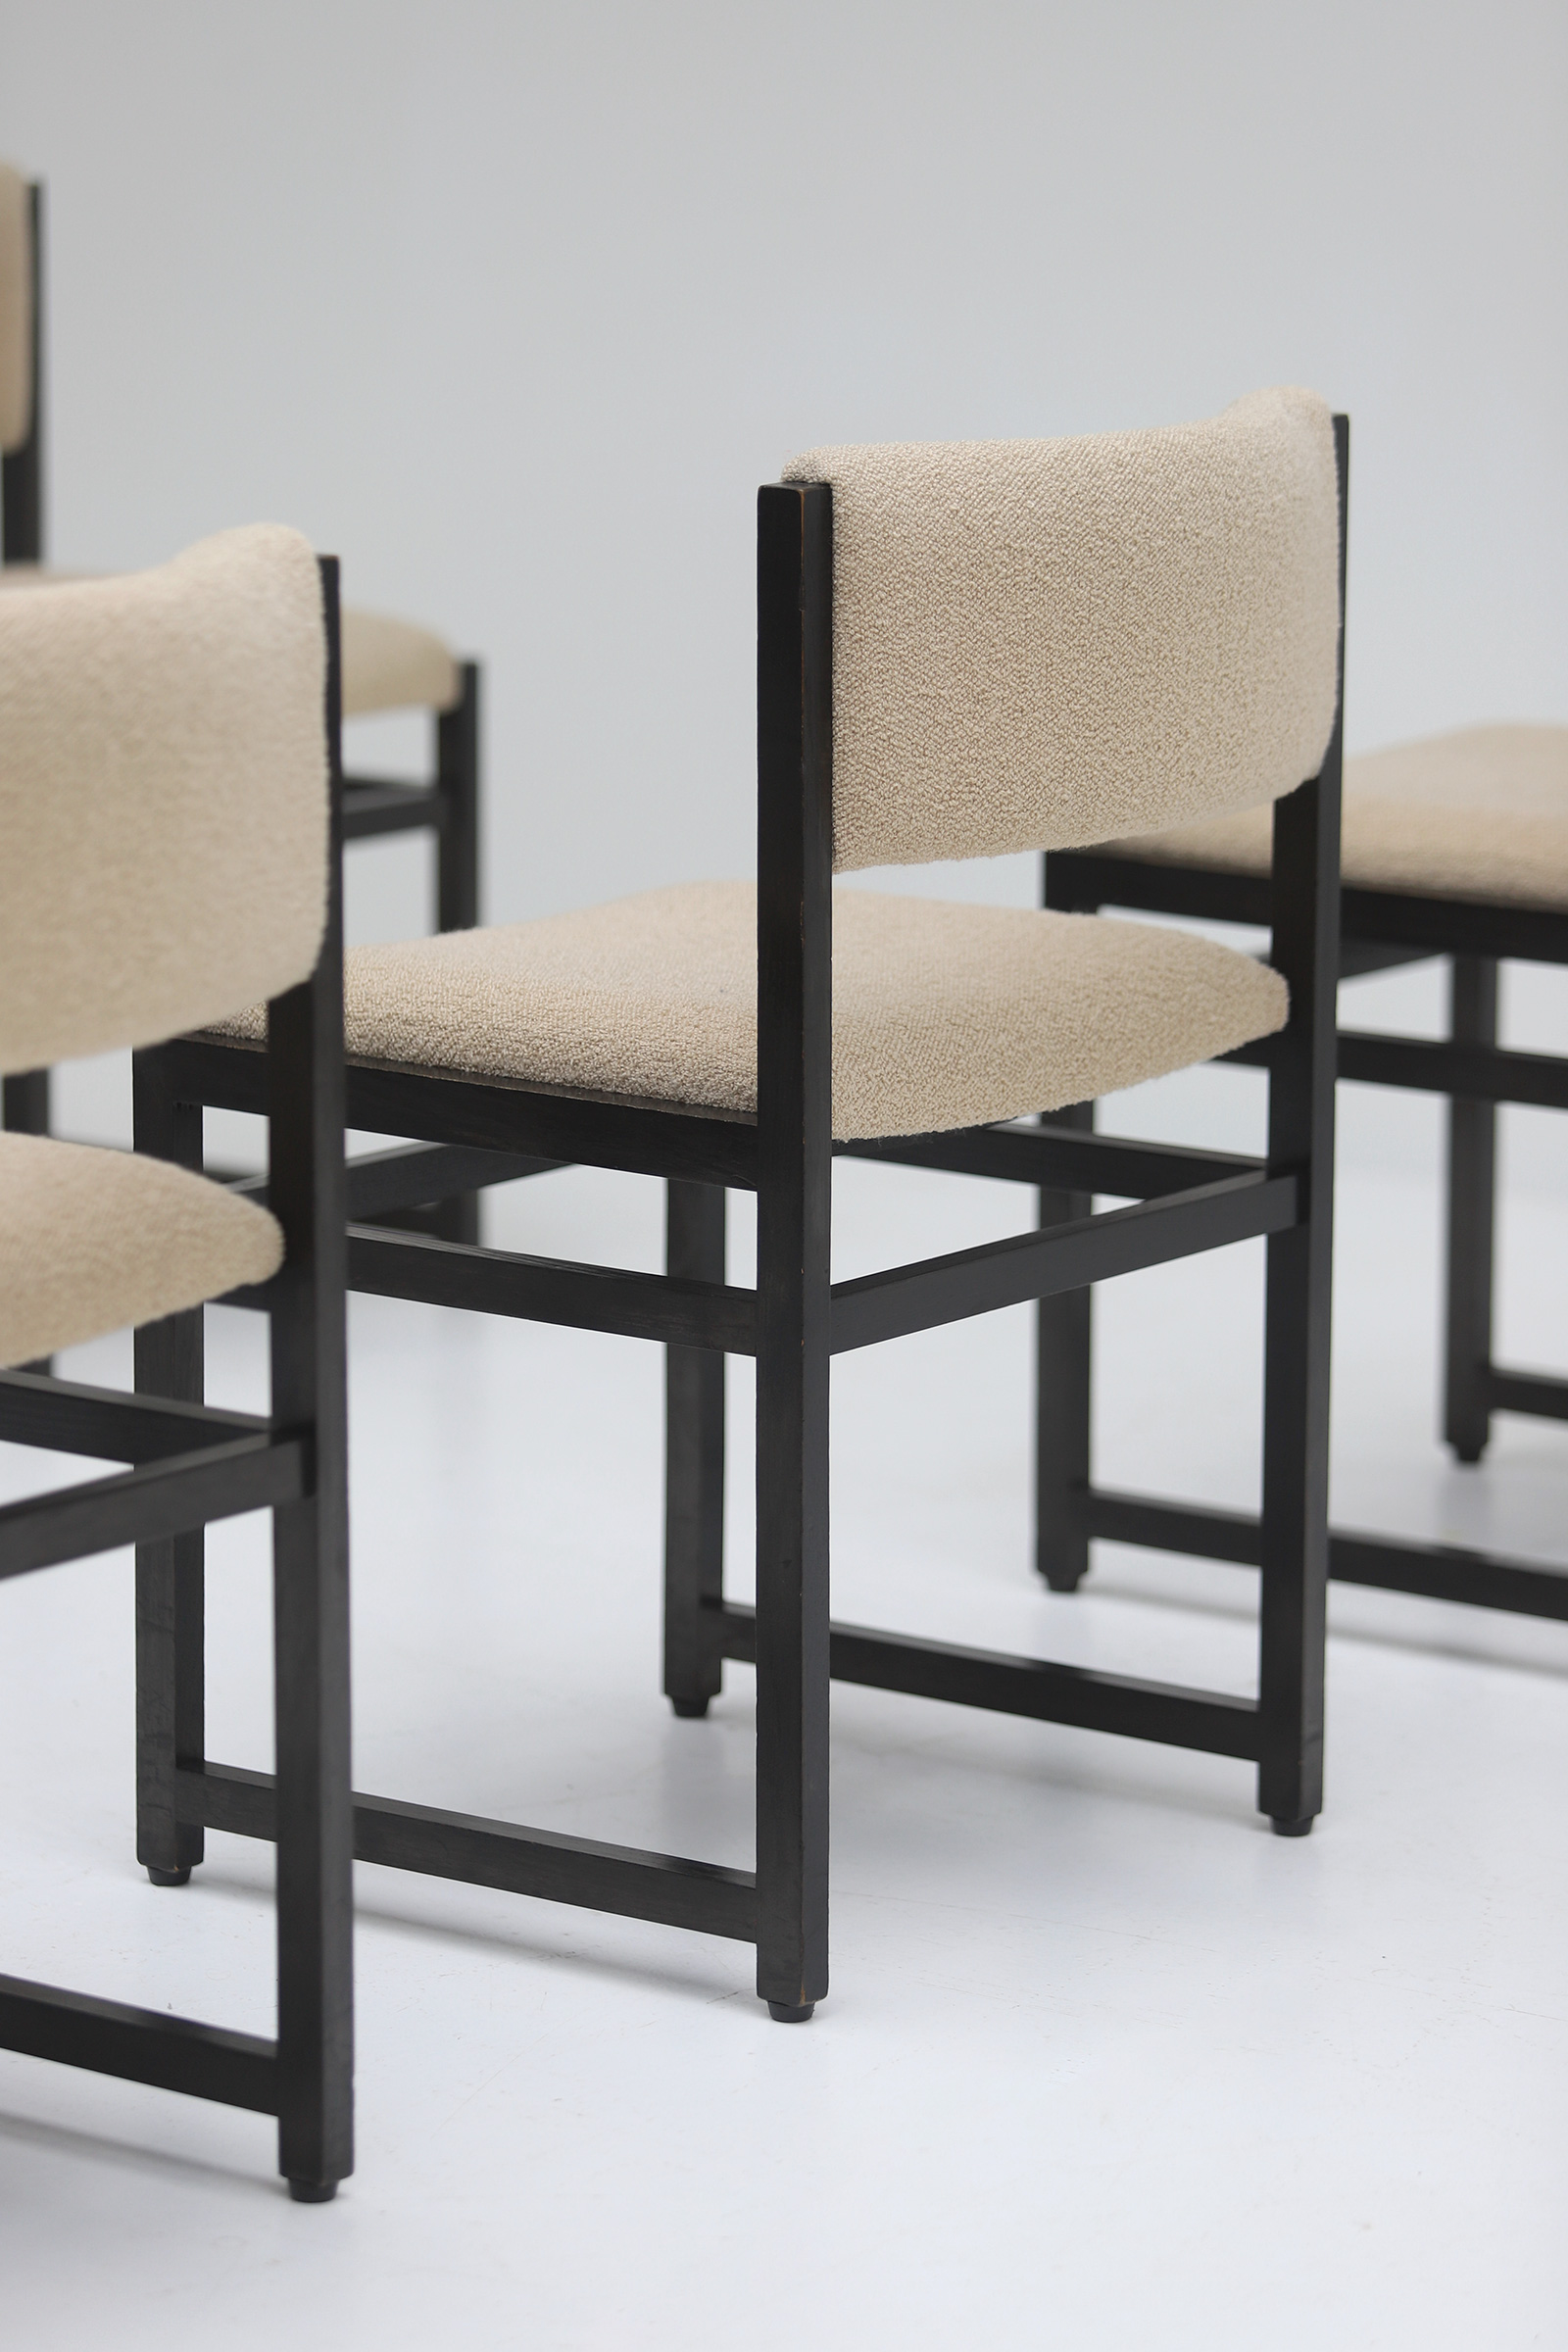 Six Black Stained Oak Chairs with Bouclé Upholsteryimage 11